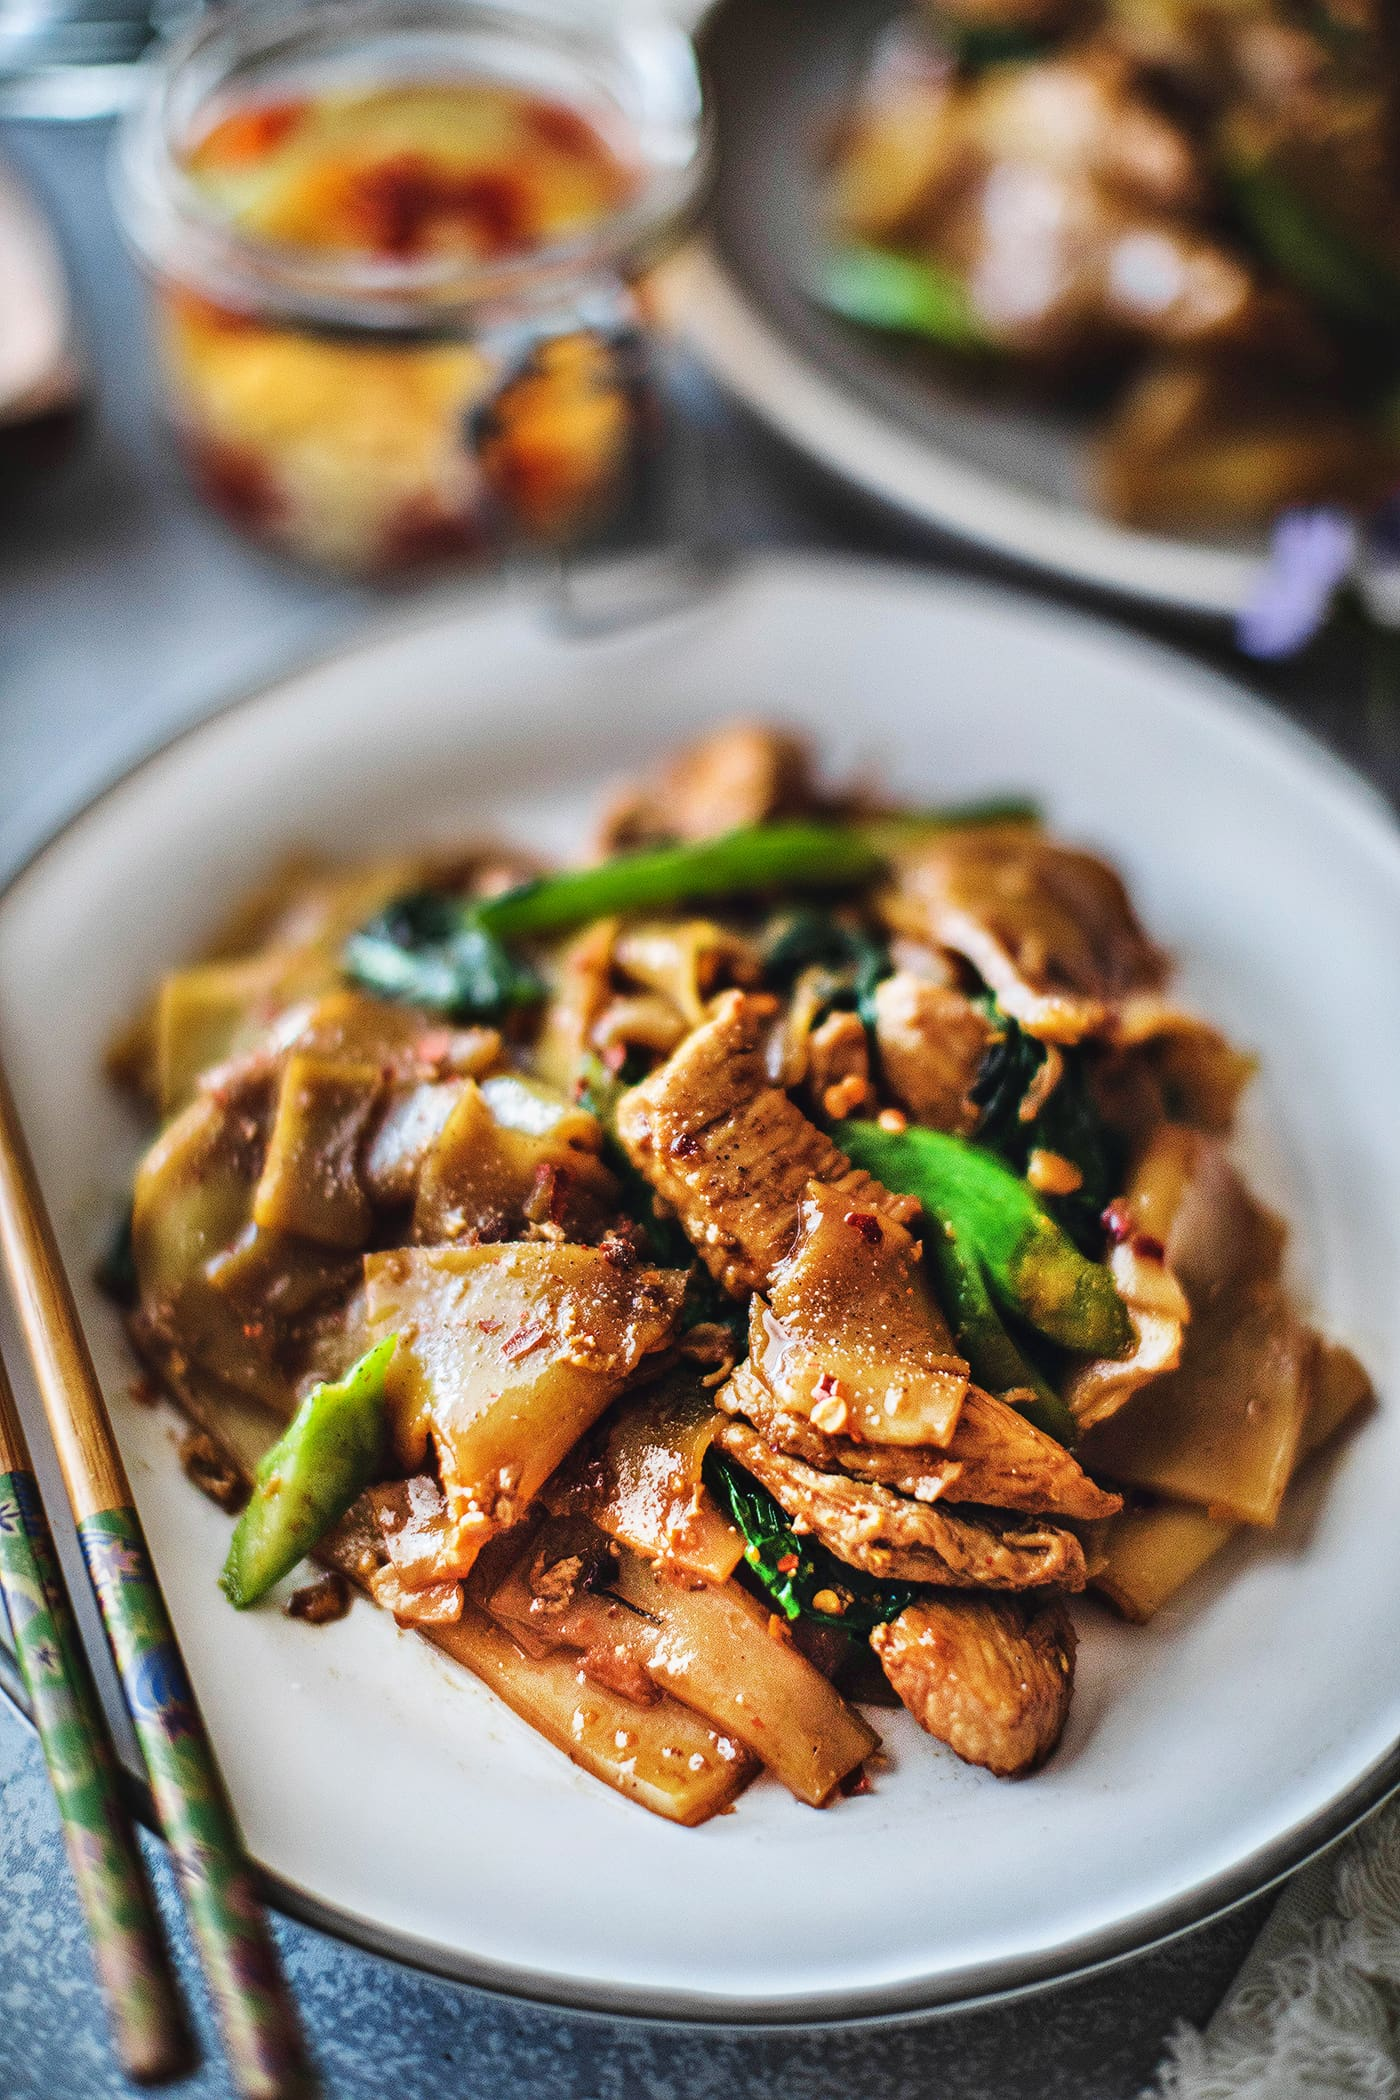 Pad See Ew is one of the most delicious Thai stir fry dishes! It uses wide rice noodles, garlic, eggs, sauces, and Chinese broccoli. This popular street food has a silky and savory flavor from the use of Thai sauces, making this Pad See Ew recipe delightfully memorable. #padseeew #thaifood #padseeewrecipe #senyai